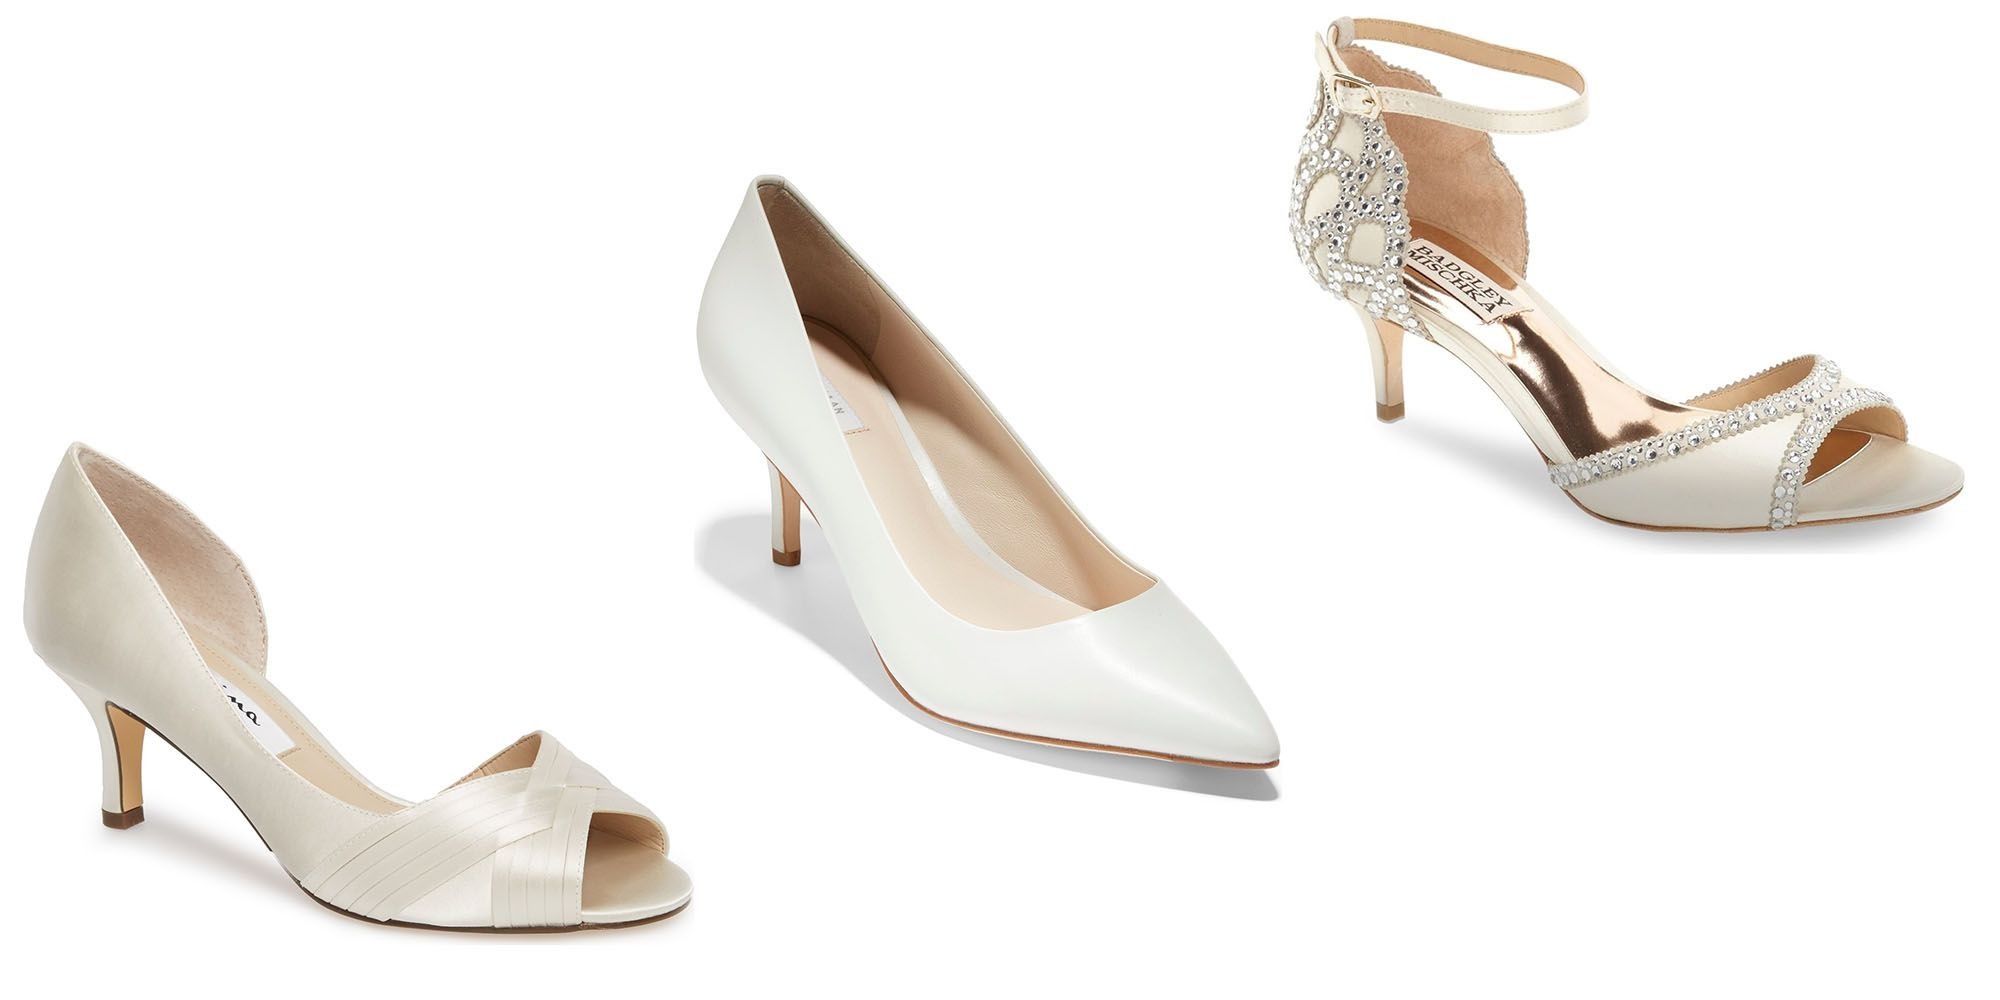 11 Cute Wedding Shoes That Are Actually Comfortable